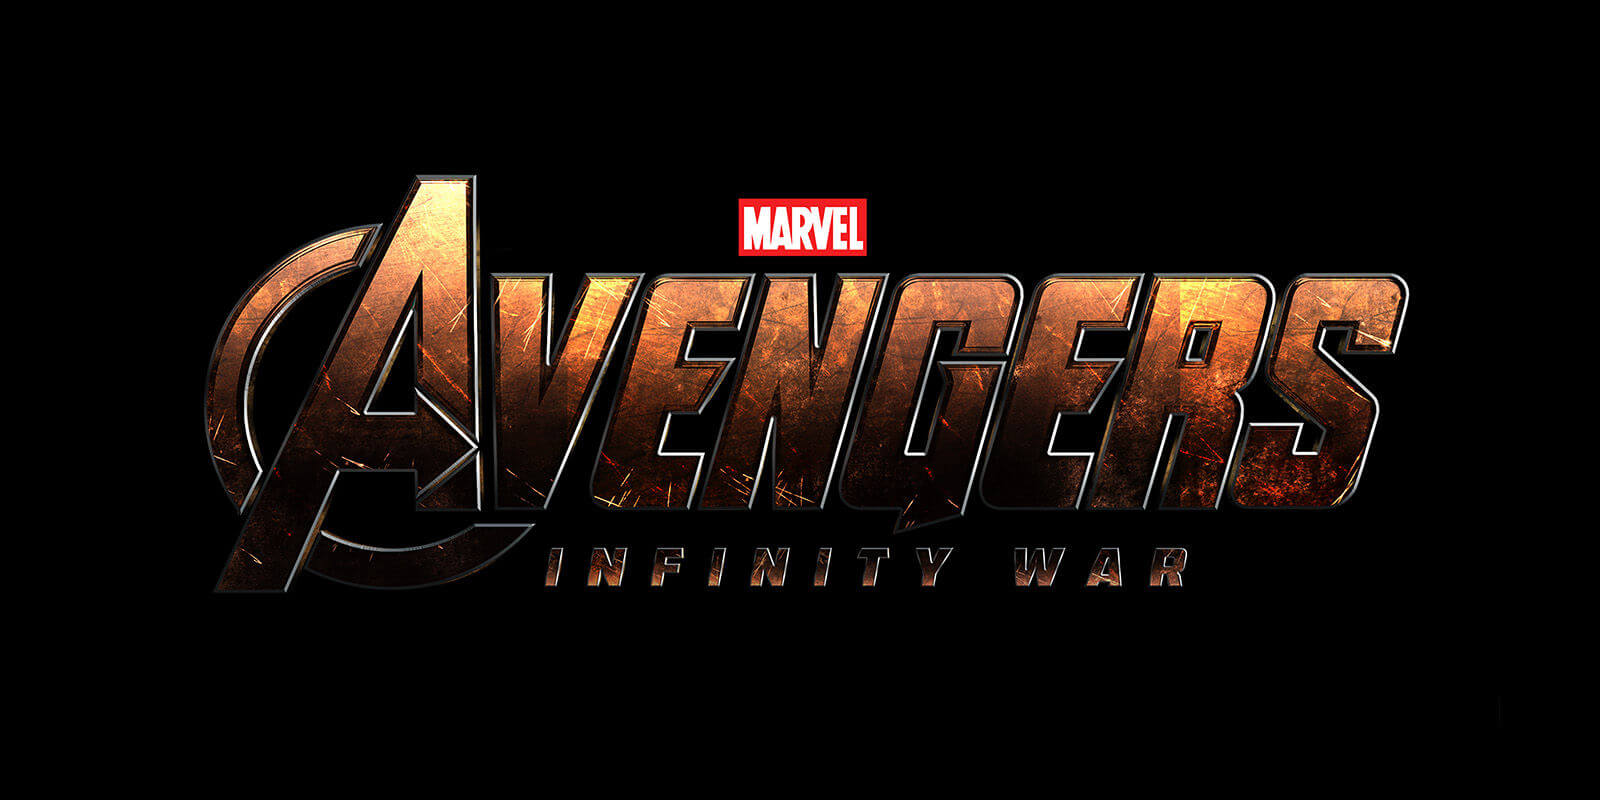 Avengers: Infinity War has started production - and there's video to prove it